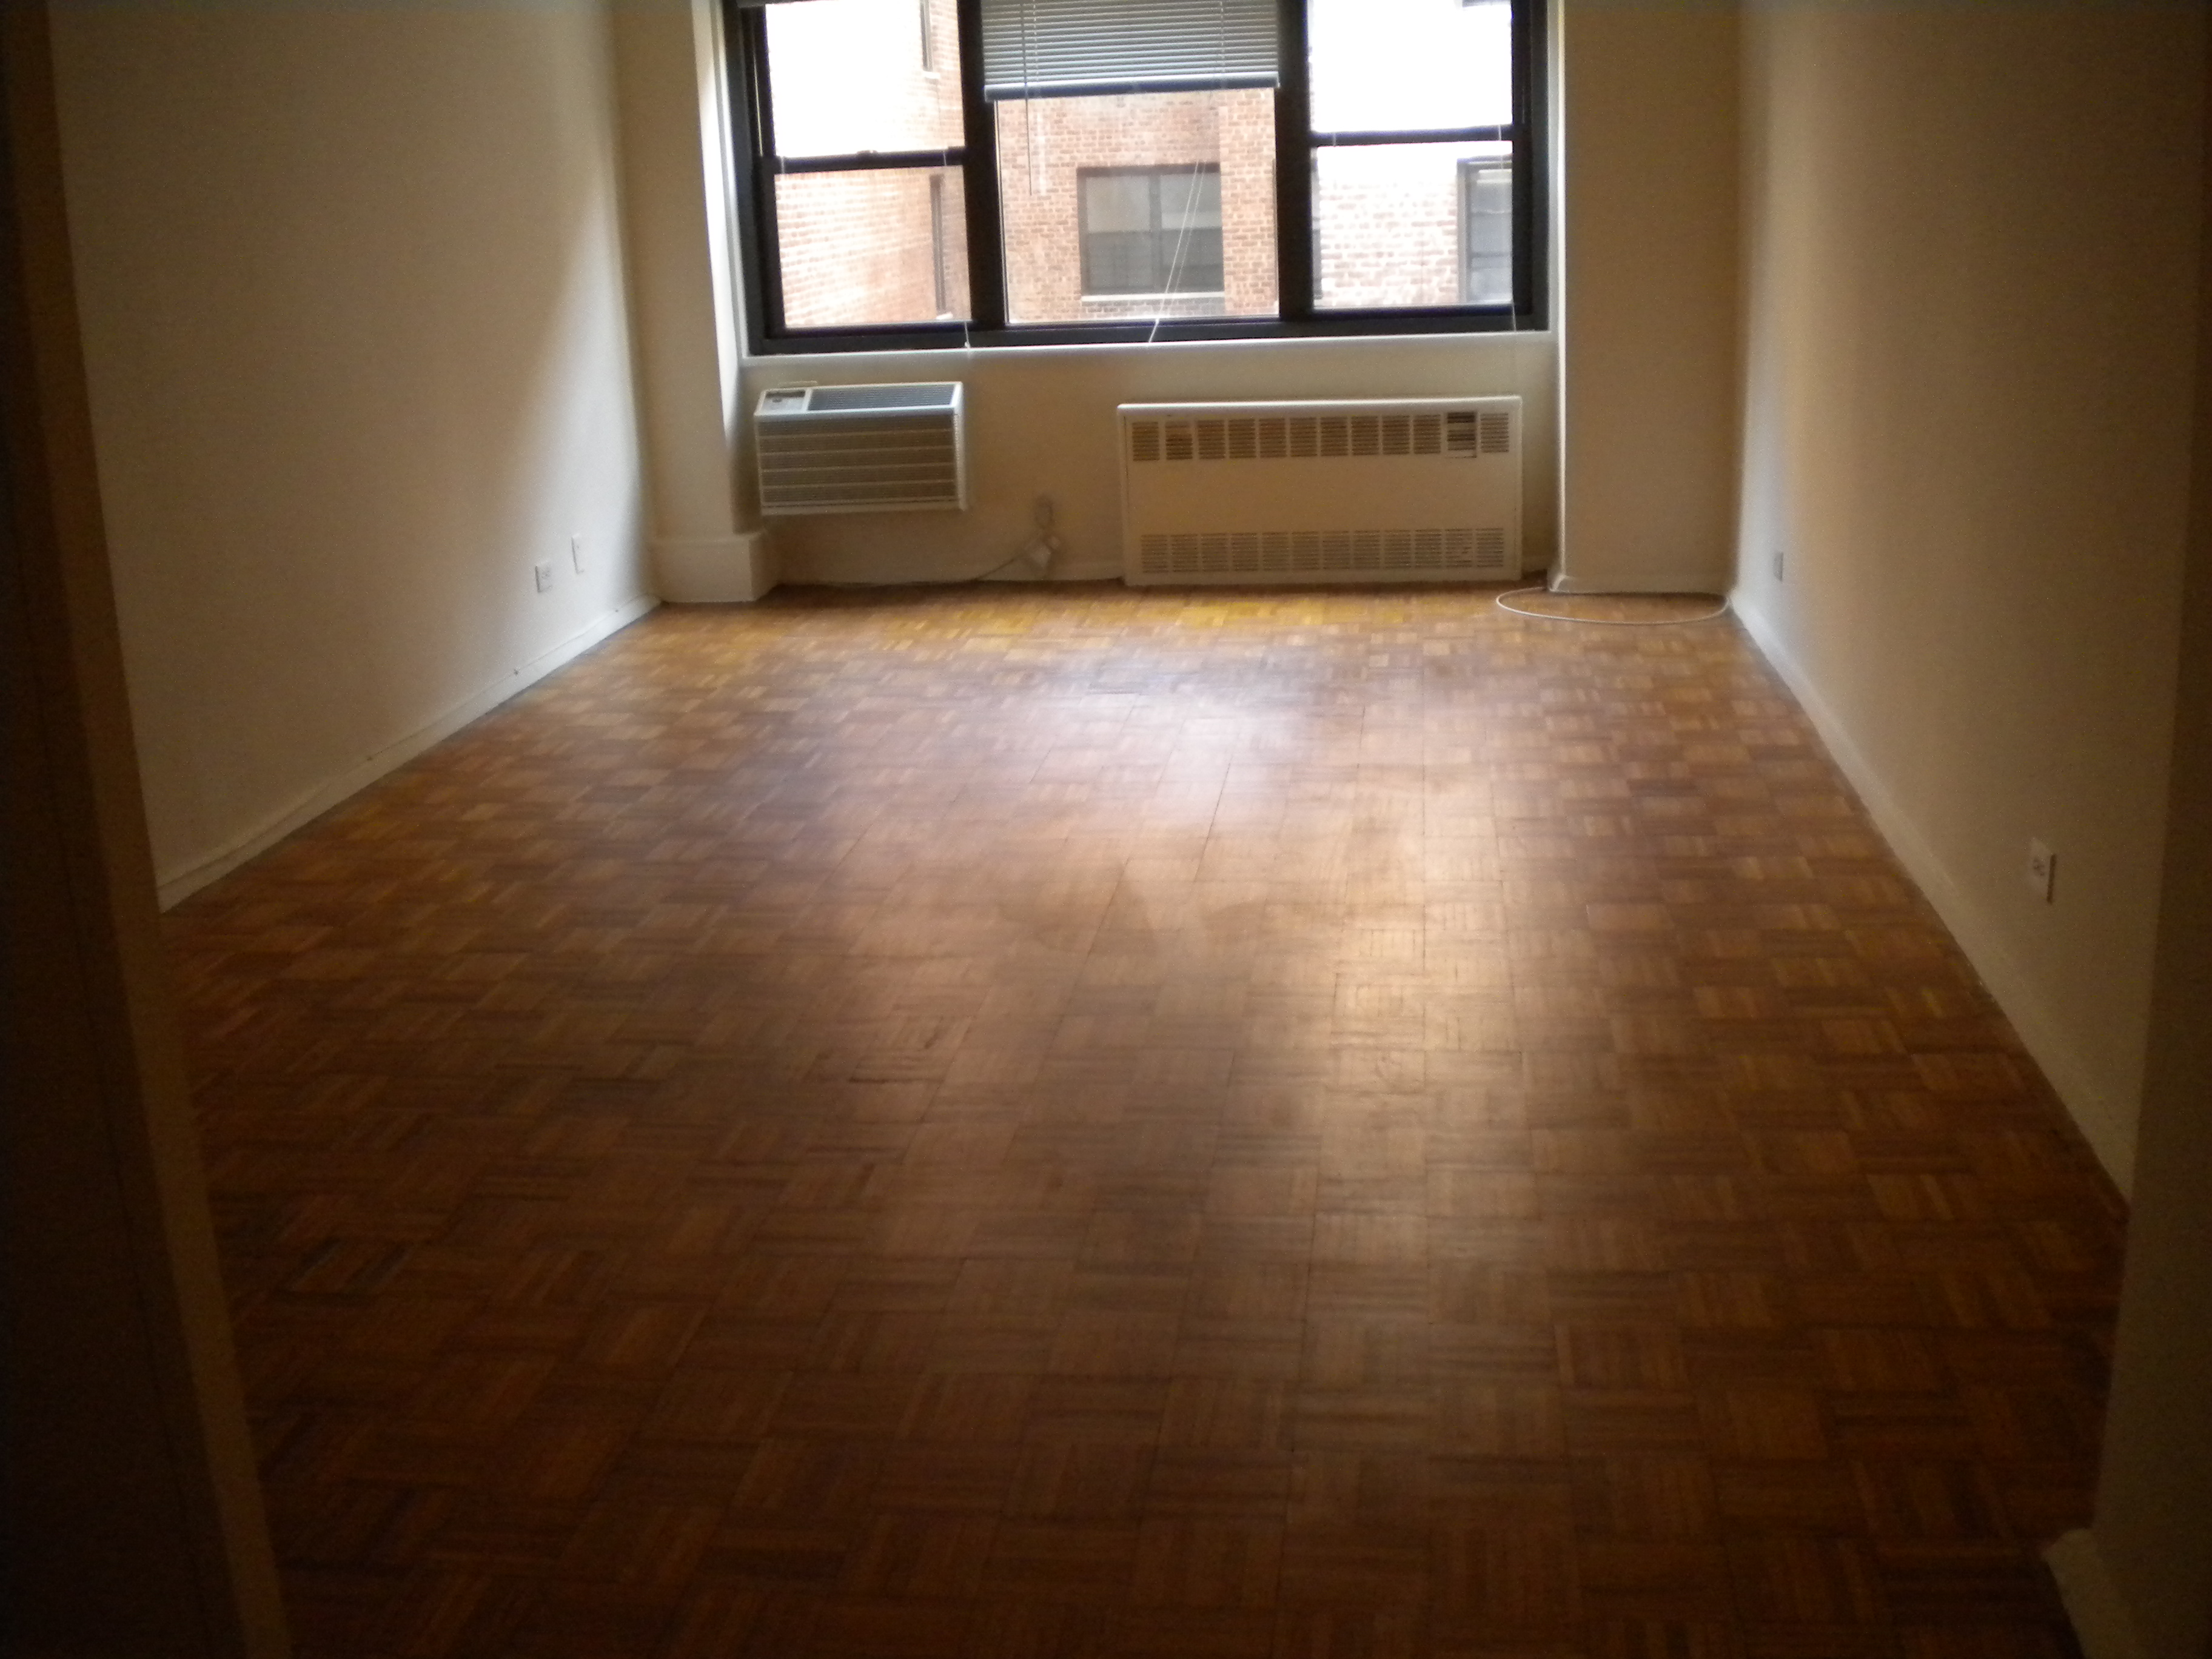 Lovely One Bedroom, steps from 71st Continental E,F, M & R trains.  Short walk to Austin St. shopping, restaurants, movies, health clubs and LIRR.  To view please contact Debbie, Associate Broker at  631-691-9771.